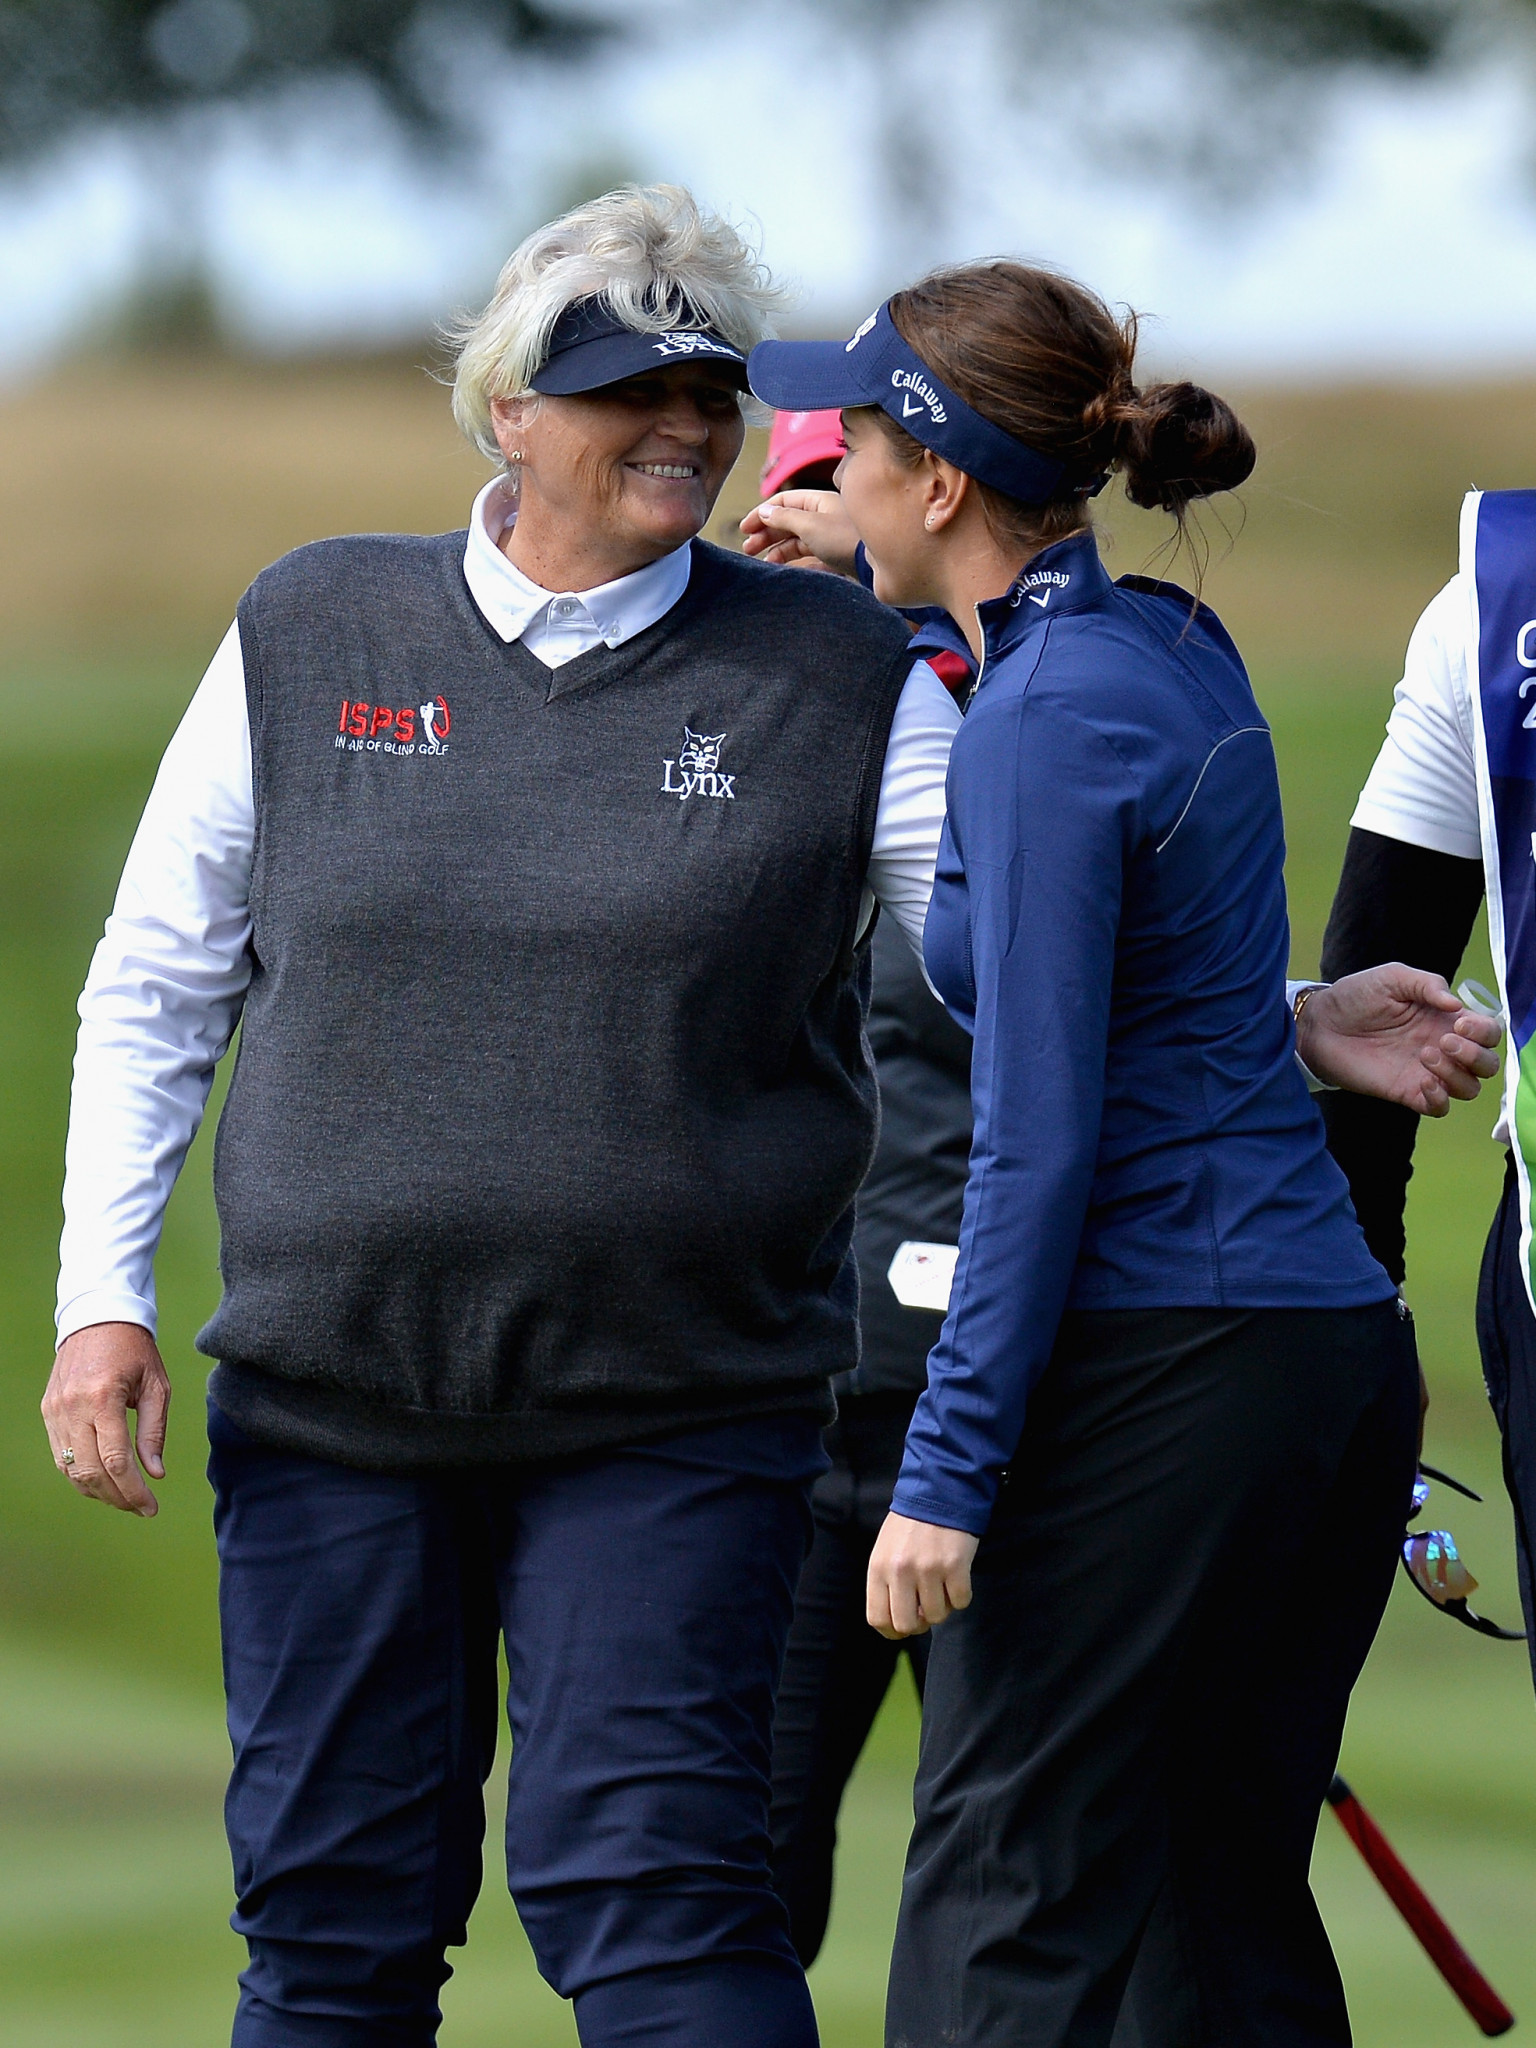 Great Britain's Georgia Hall and Laura Davies are among three British pairs in pole position to make the semi-finals after Day 2 of the European Golf Championships ©Getty Images